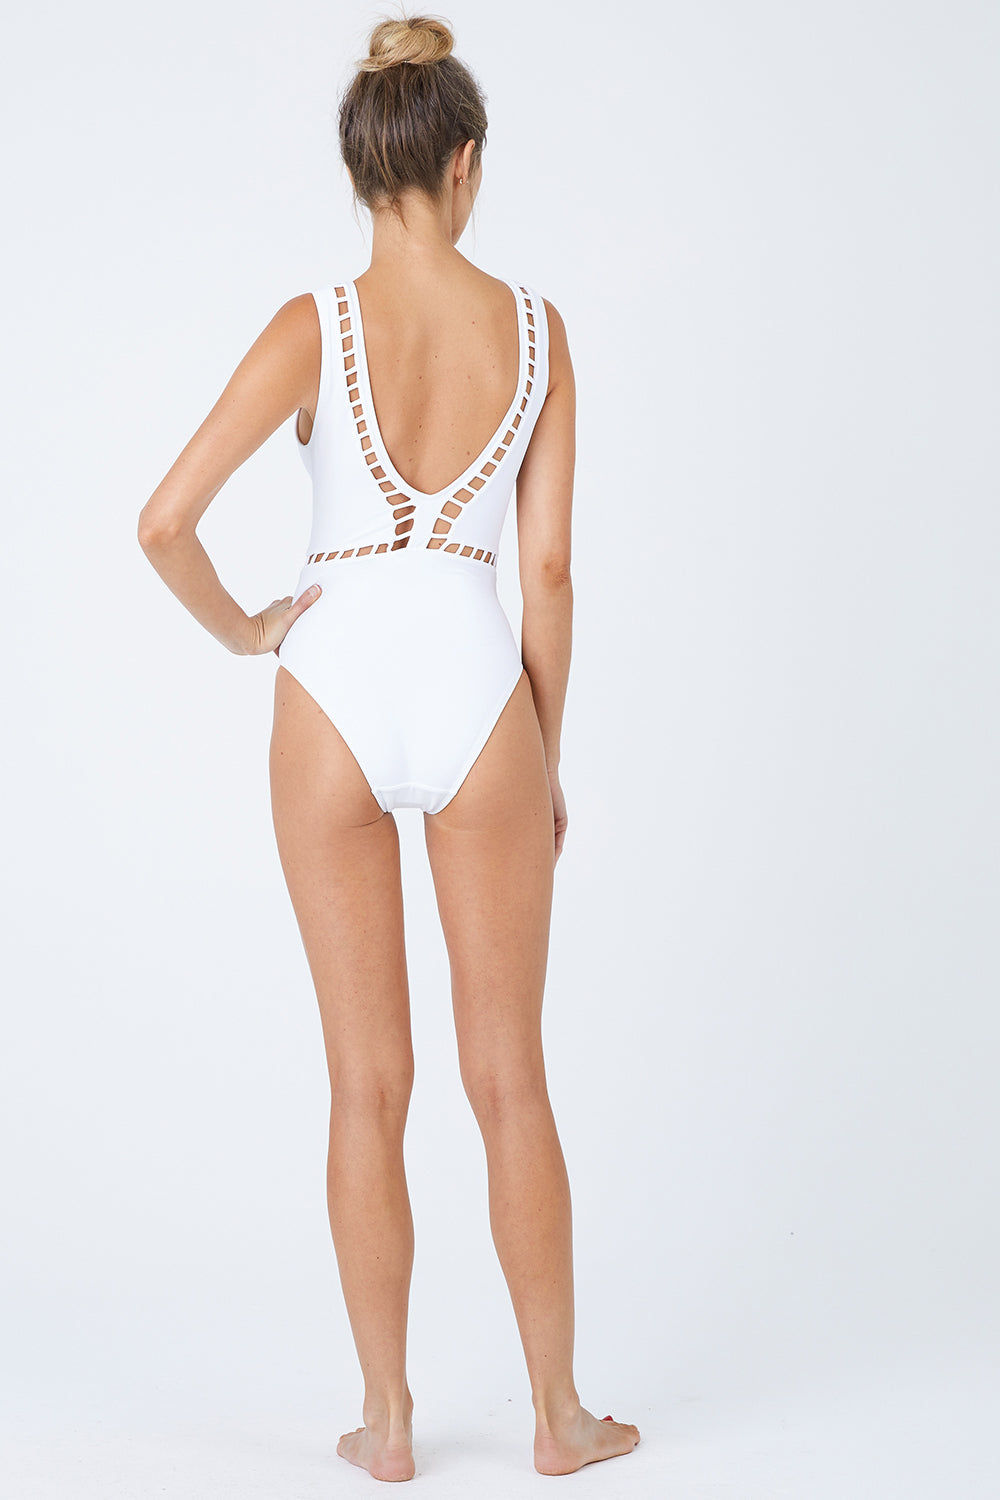 OYE SWIMWEAR Ela Plunge Cut Out High Cut One Piece Swimsuit - White One Piece | White| Oye Swimwear Ela Plunge Cut Out High Cut One Piece Swimsuit - White White deep v-neck one piece swimsuit with cut-out pattern. Wide strap, sleeveless pull-over design features a deep v-shaped back Geometric cut-out high cut leg moderate coverage Back View